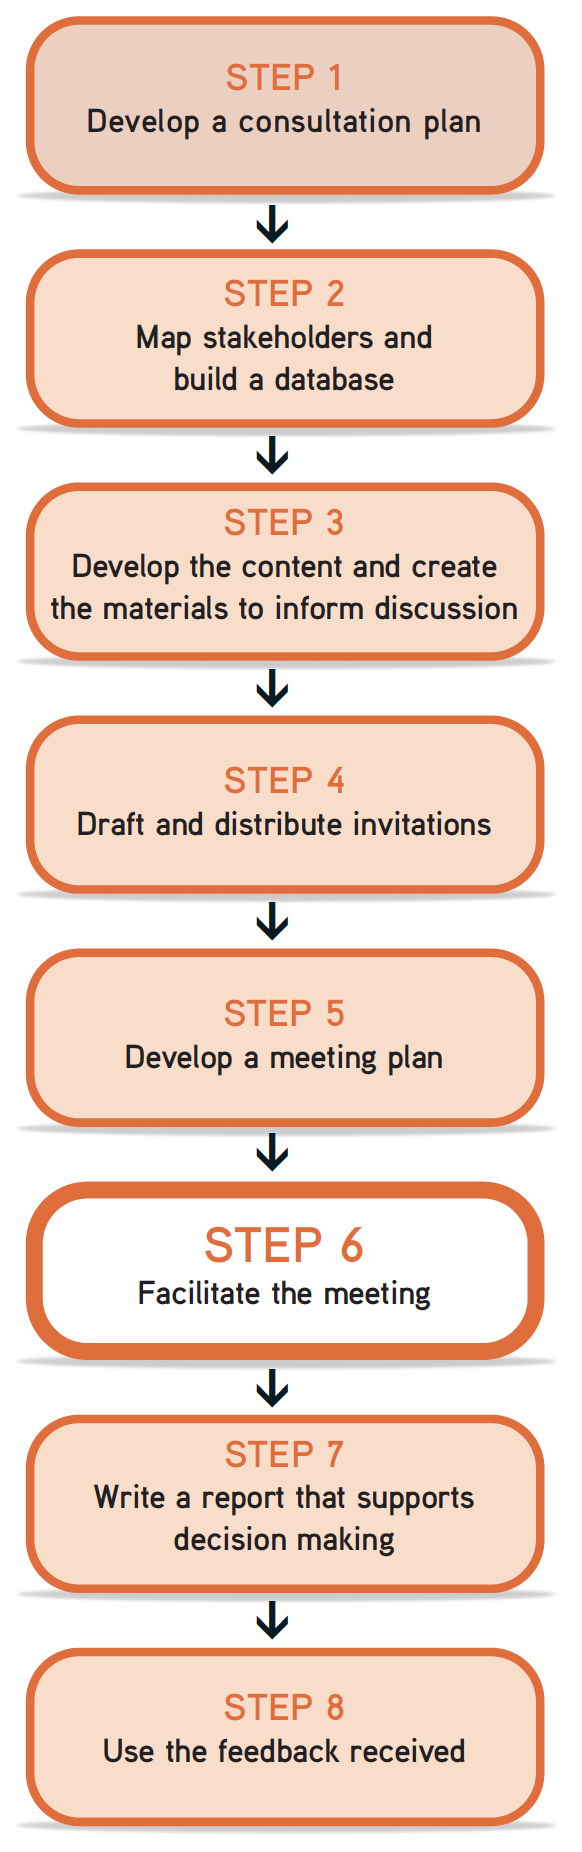 "Picture of steps flow chart, with Step 6 ""facilitate the meeting"" highlighted."